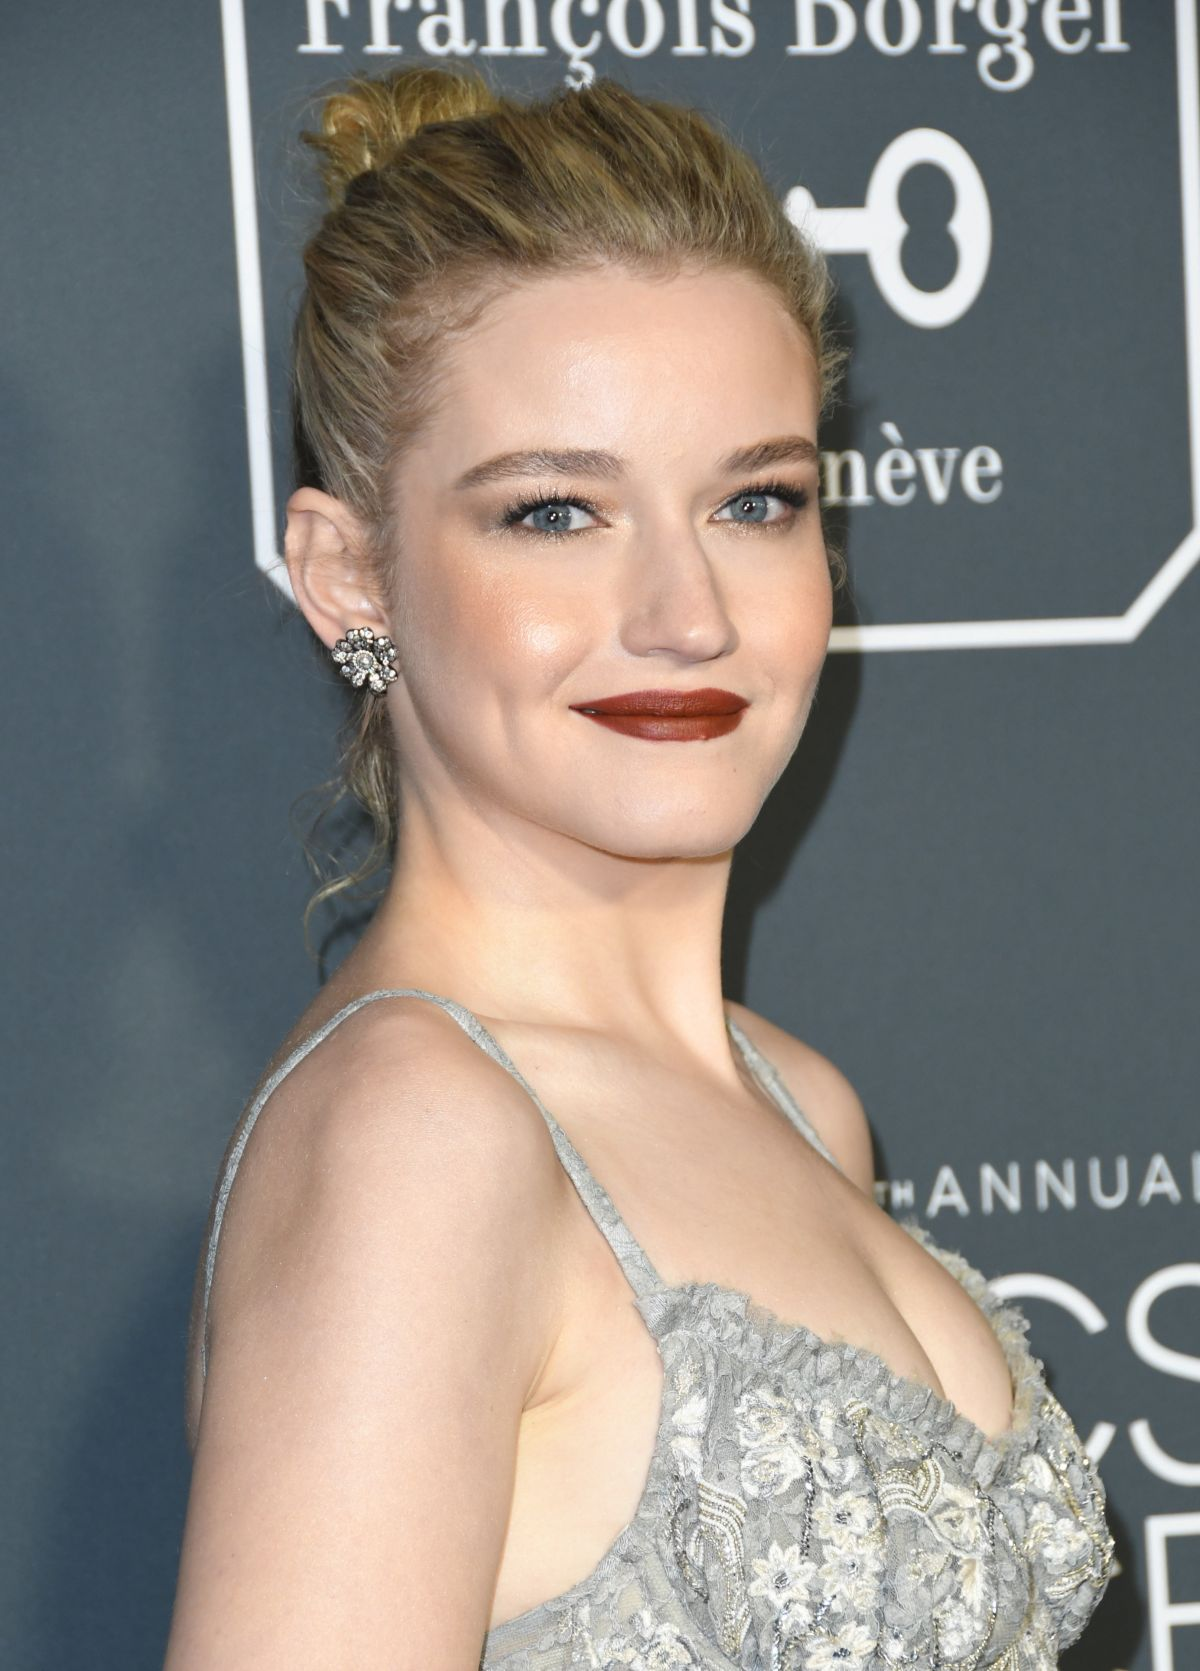 Julia Garner At Ozark Screening And Reception In Los: JULIA GARNER At 2019 Critics' Choice Awards In Santa